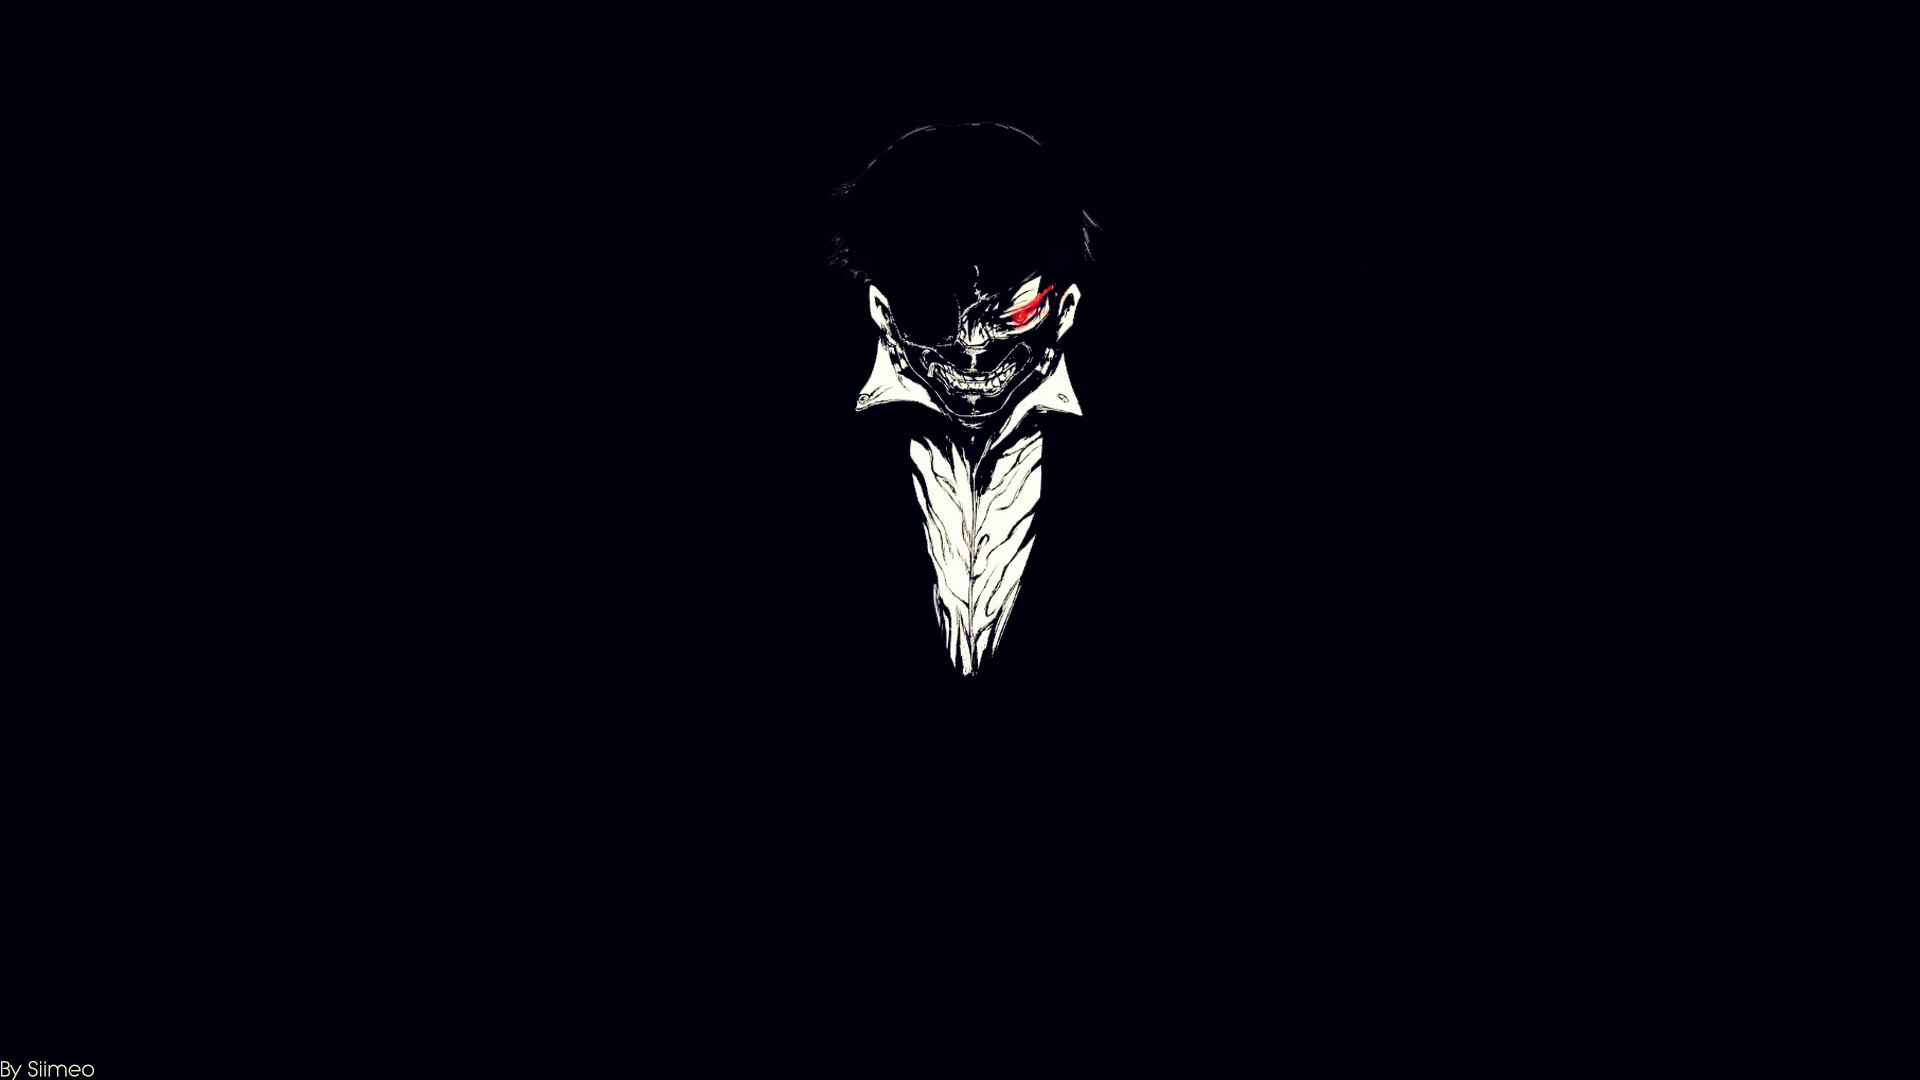 Tokyo Ghoul HD Wallpapers Backgrounds Wallpaper 1920×1080 Ghoul Wallpapers  (32 Wallpapers)  